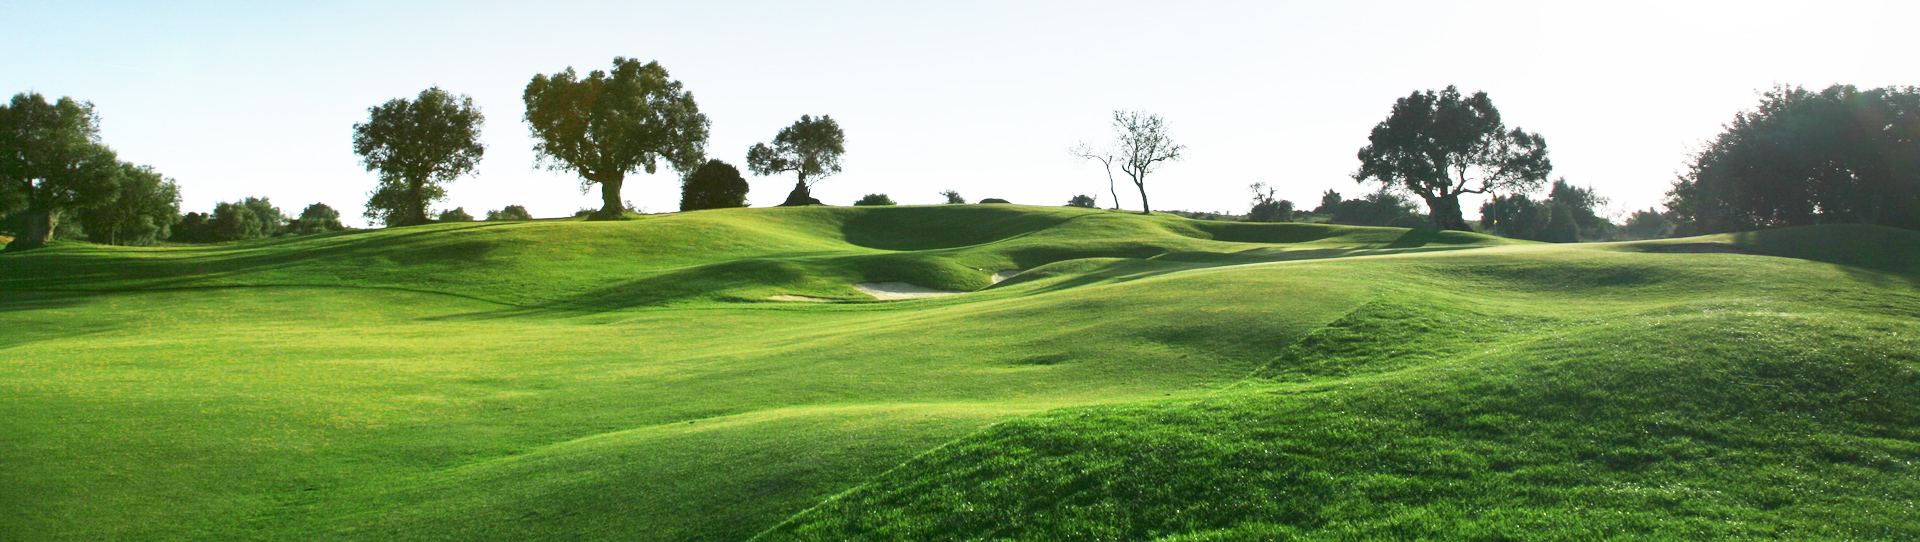 Vale da Pinta Golf Course - Photo 2